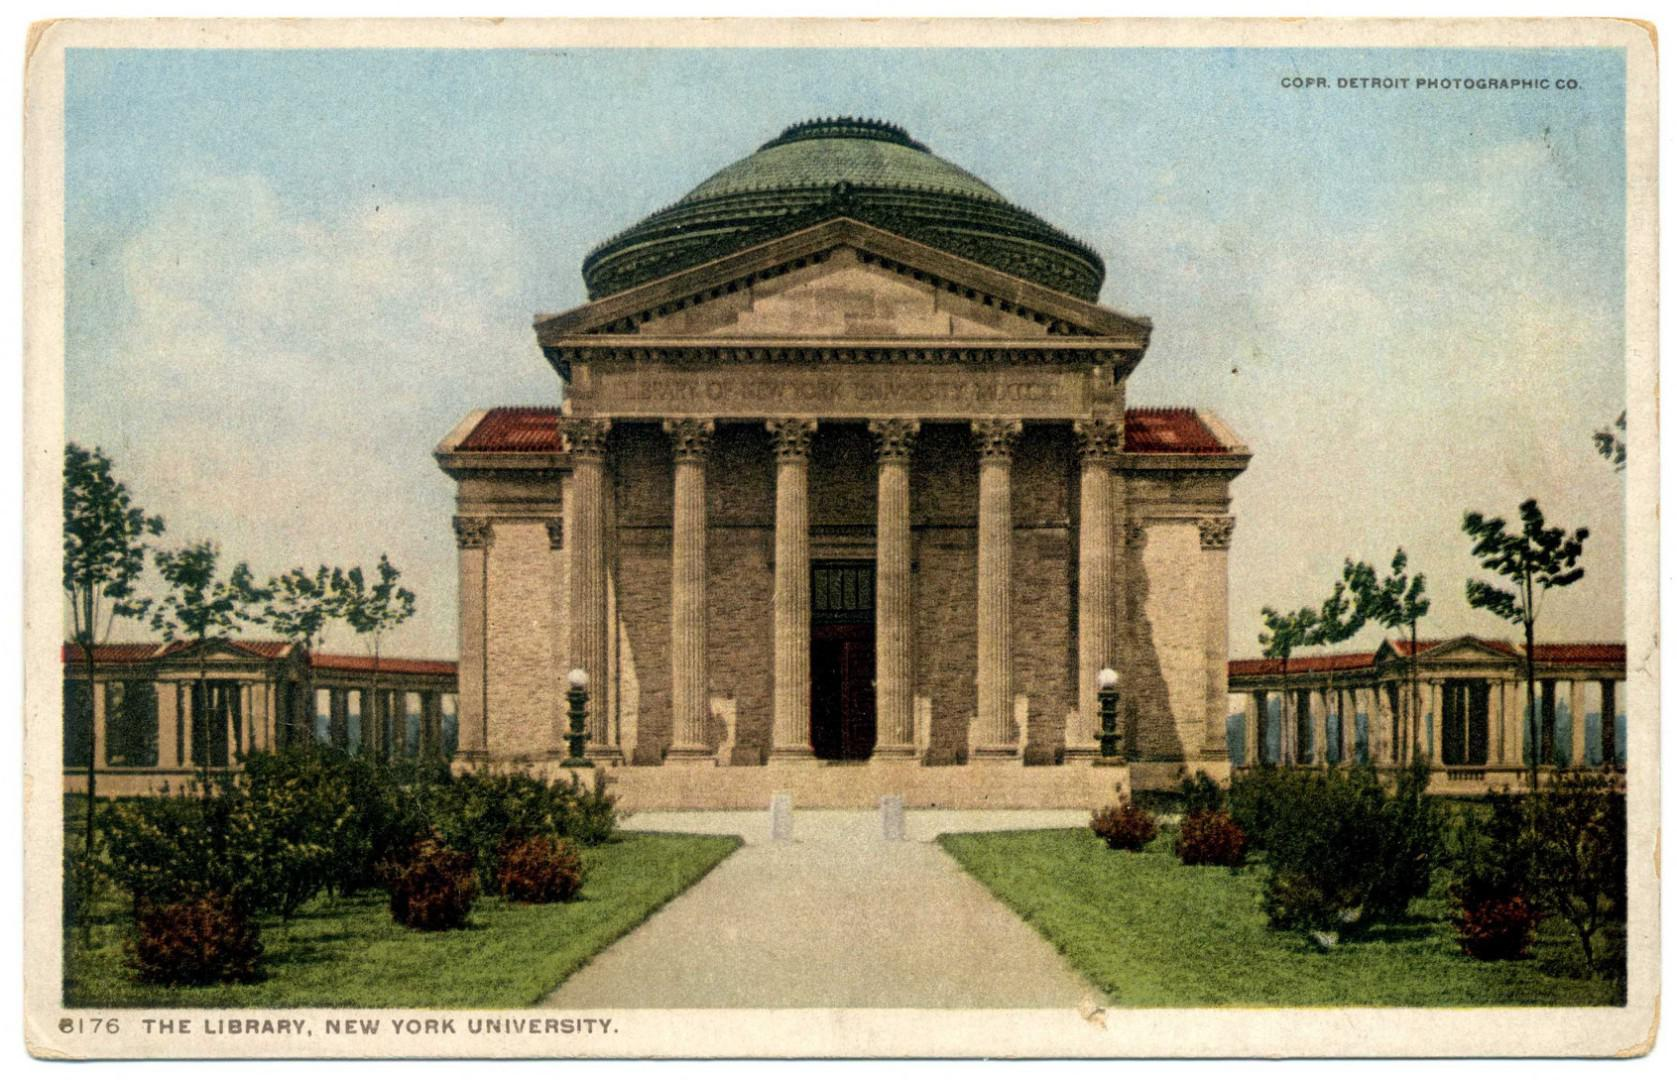 New York University: Gould Memorial Library